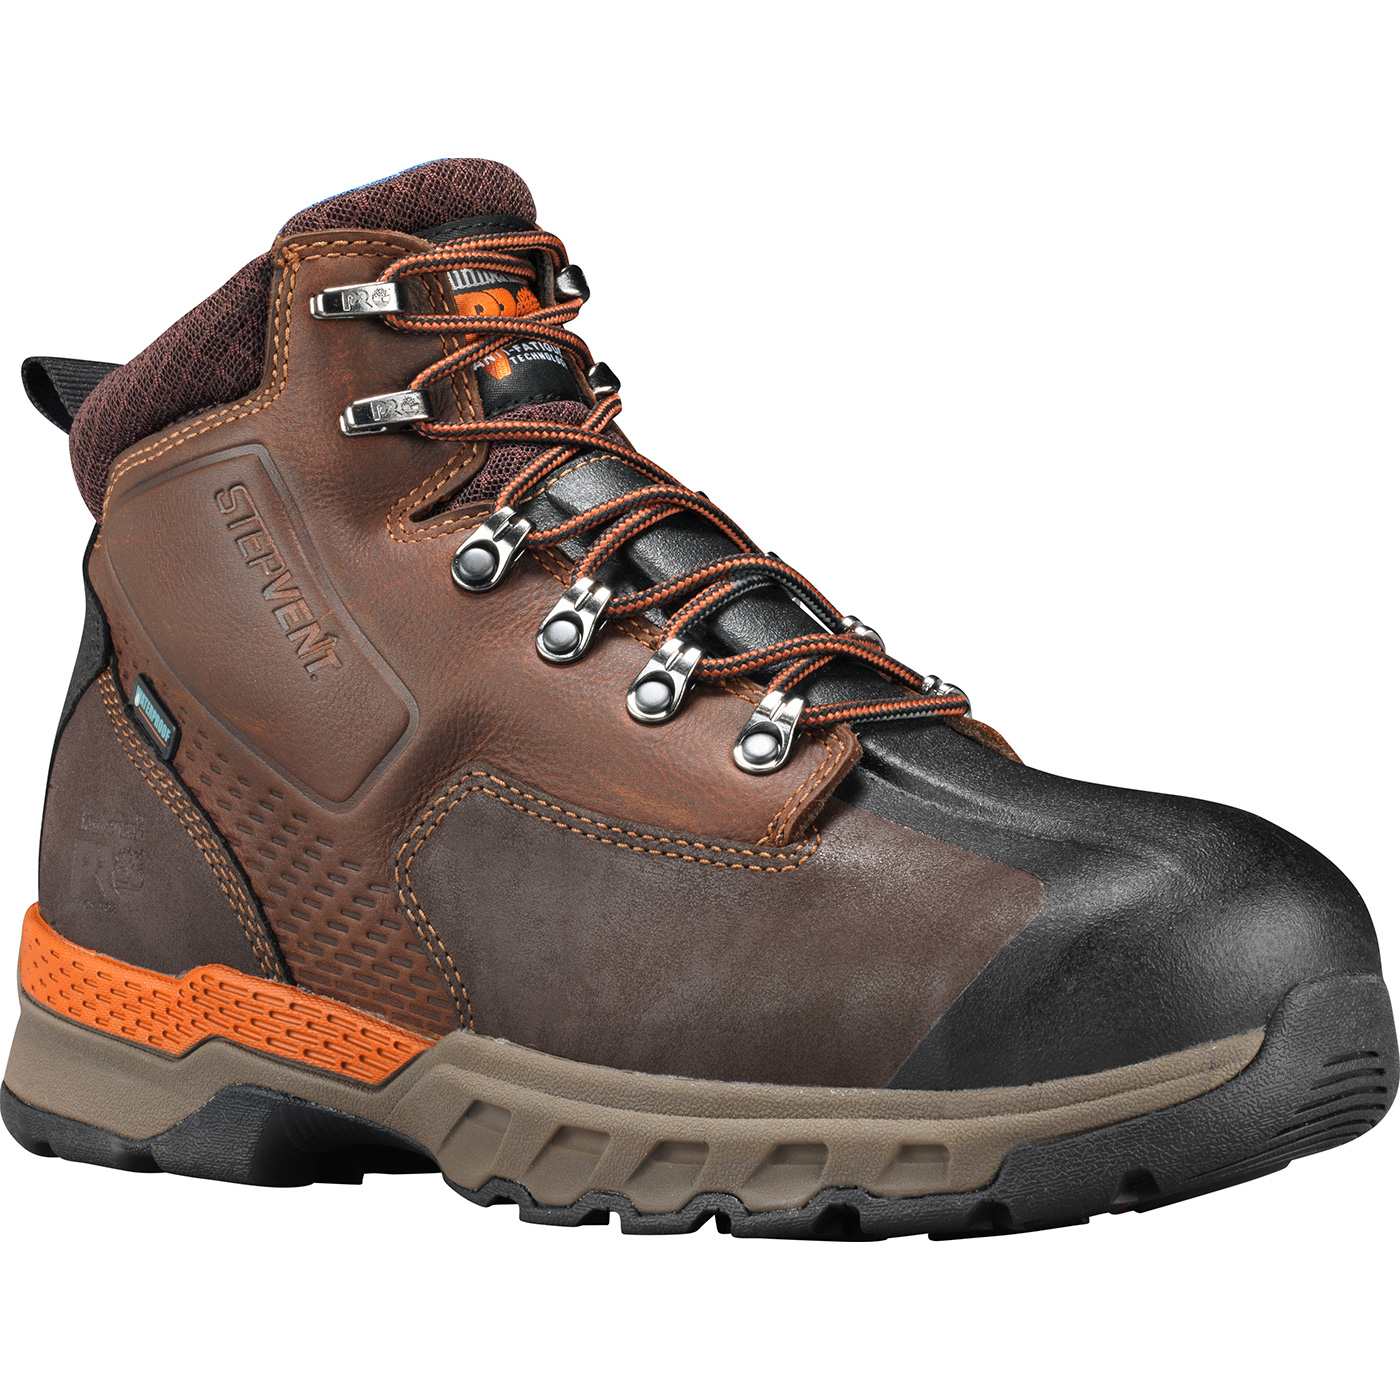 c956e4397bf Timberland PRO Downdraft Men's 6 inch Alloy Toe Electrical Hazard  Waterproof Work Hiker